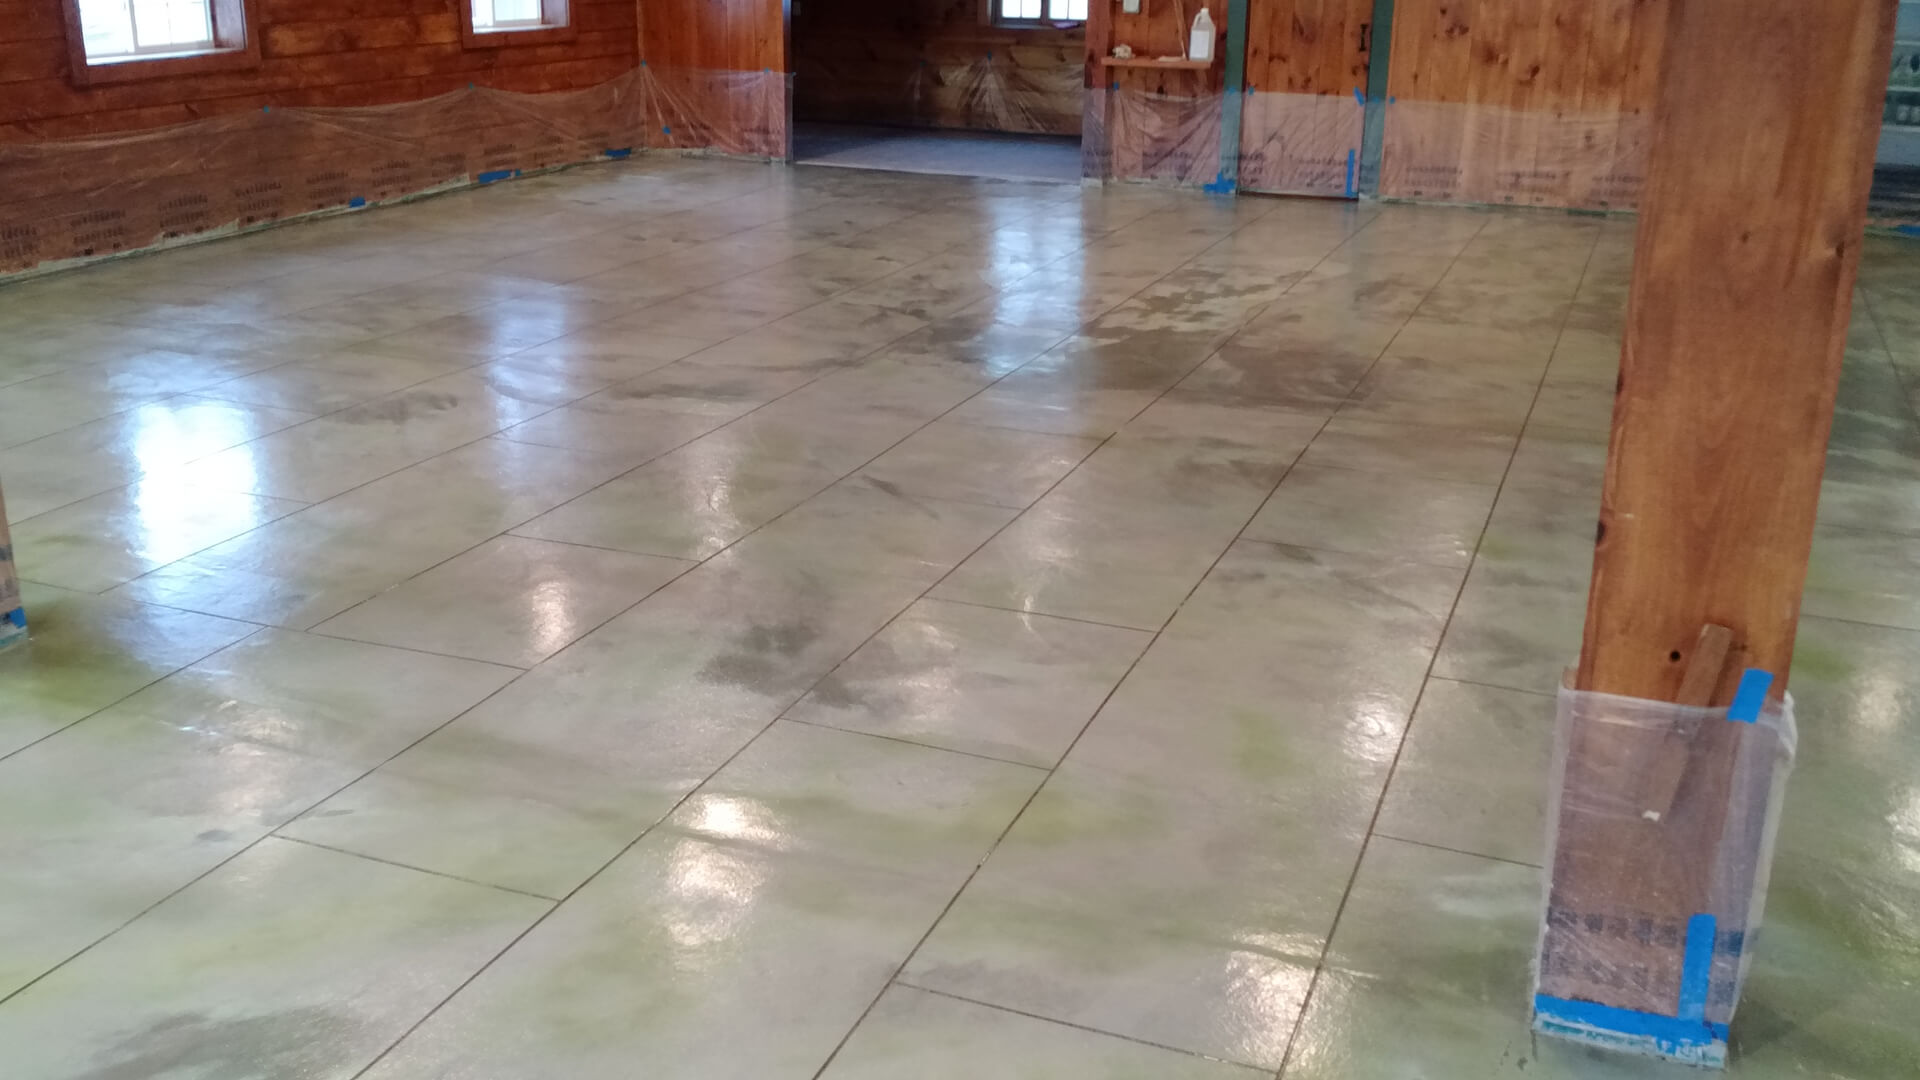 Custom Staining-Broward Custom Concrete Solutions-We offer custom concrete solutions including Polished concrete, Stained concrete, Epoxy Floor, Sealed concrete, Stamped concrete, Concrete overlay, Concrete countertops, Concrete summer kitchens, Driveway repairs, Concrete pool water falls, and more